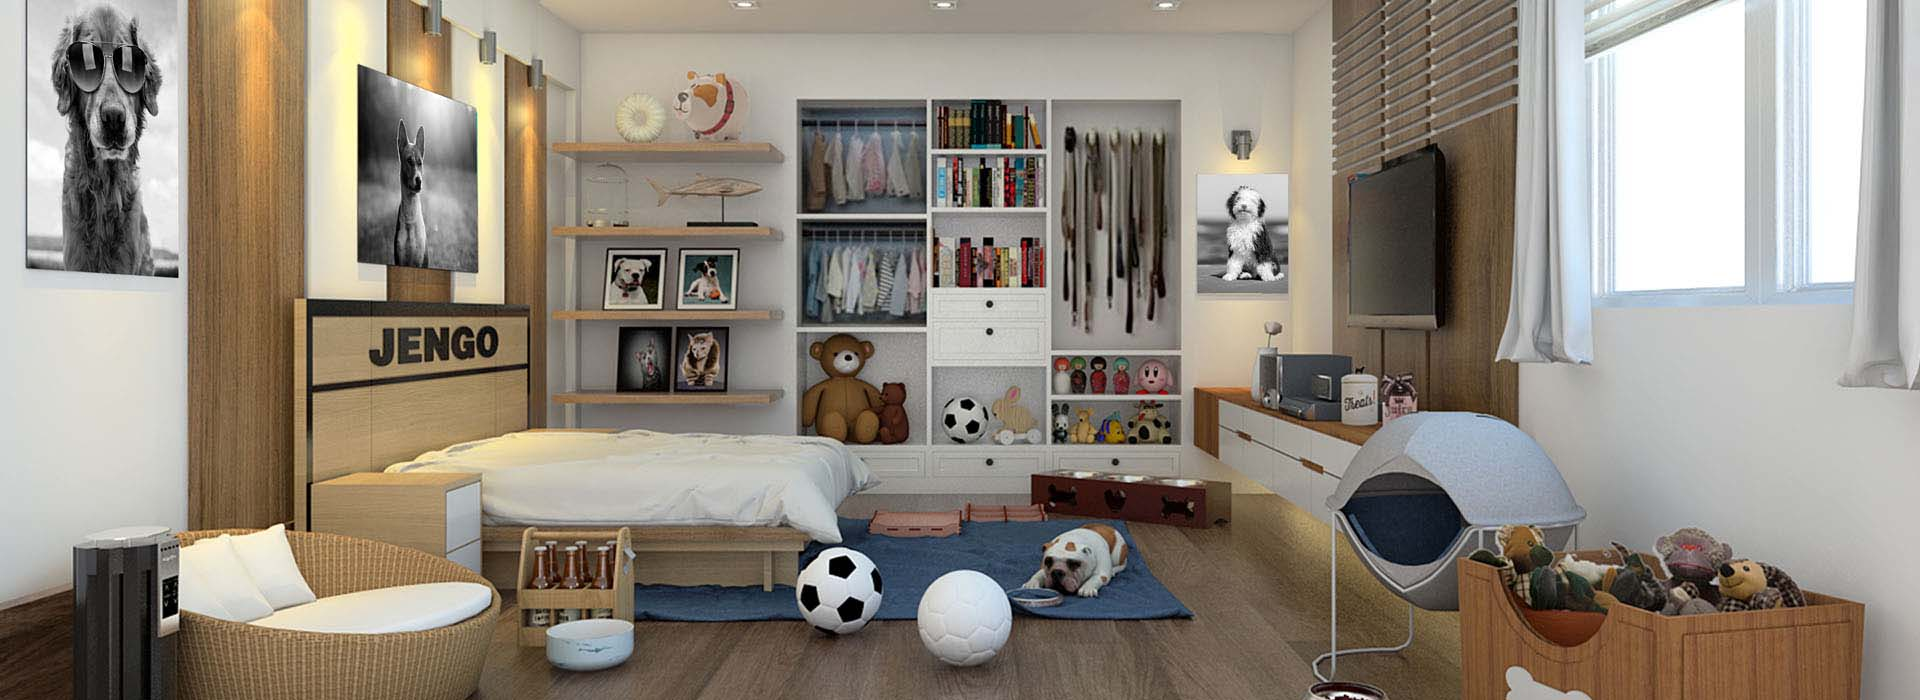 Pet Friendly House - Dogs Room